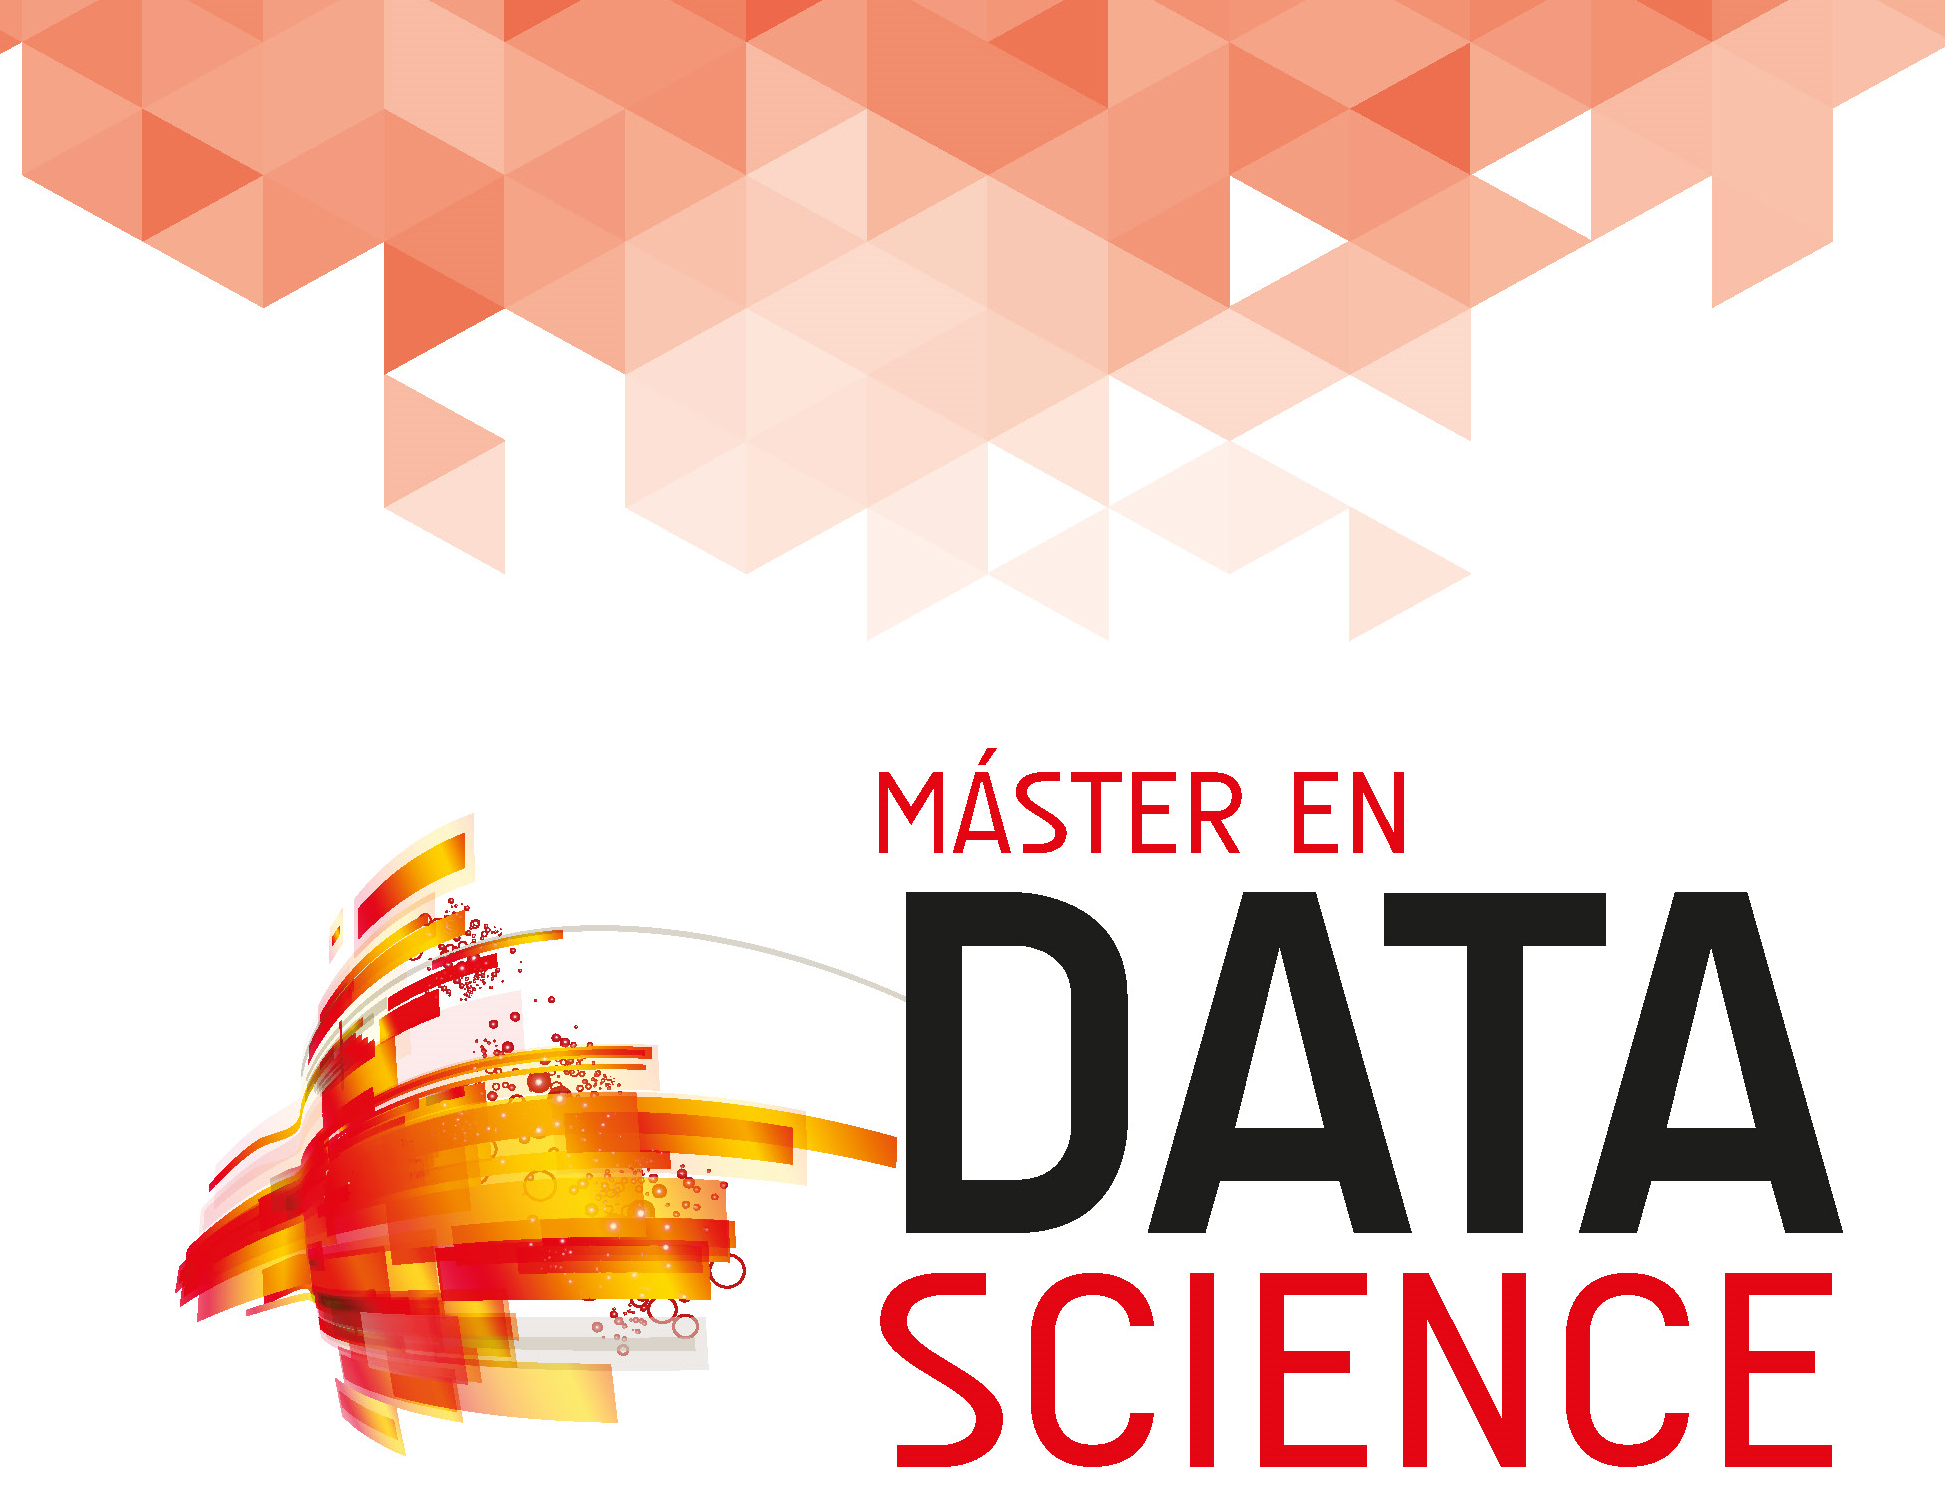 Máster en Data Science de la Universidad Rey Juan Carlos